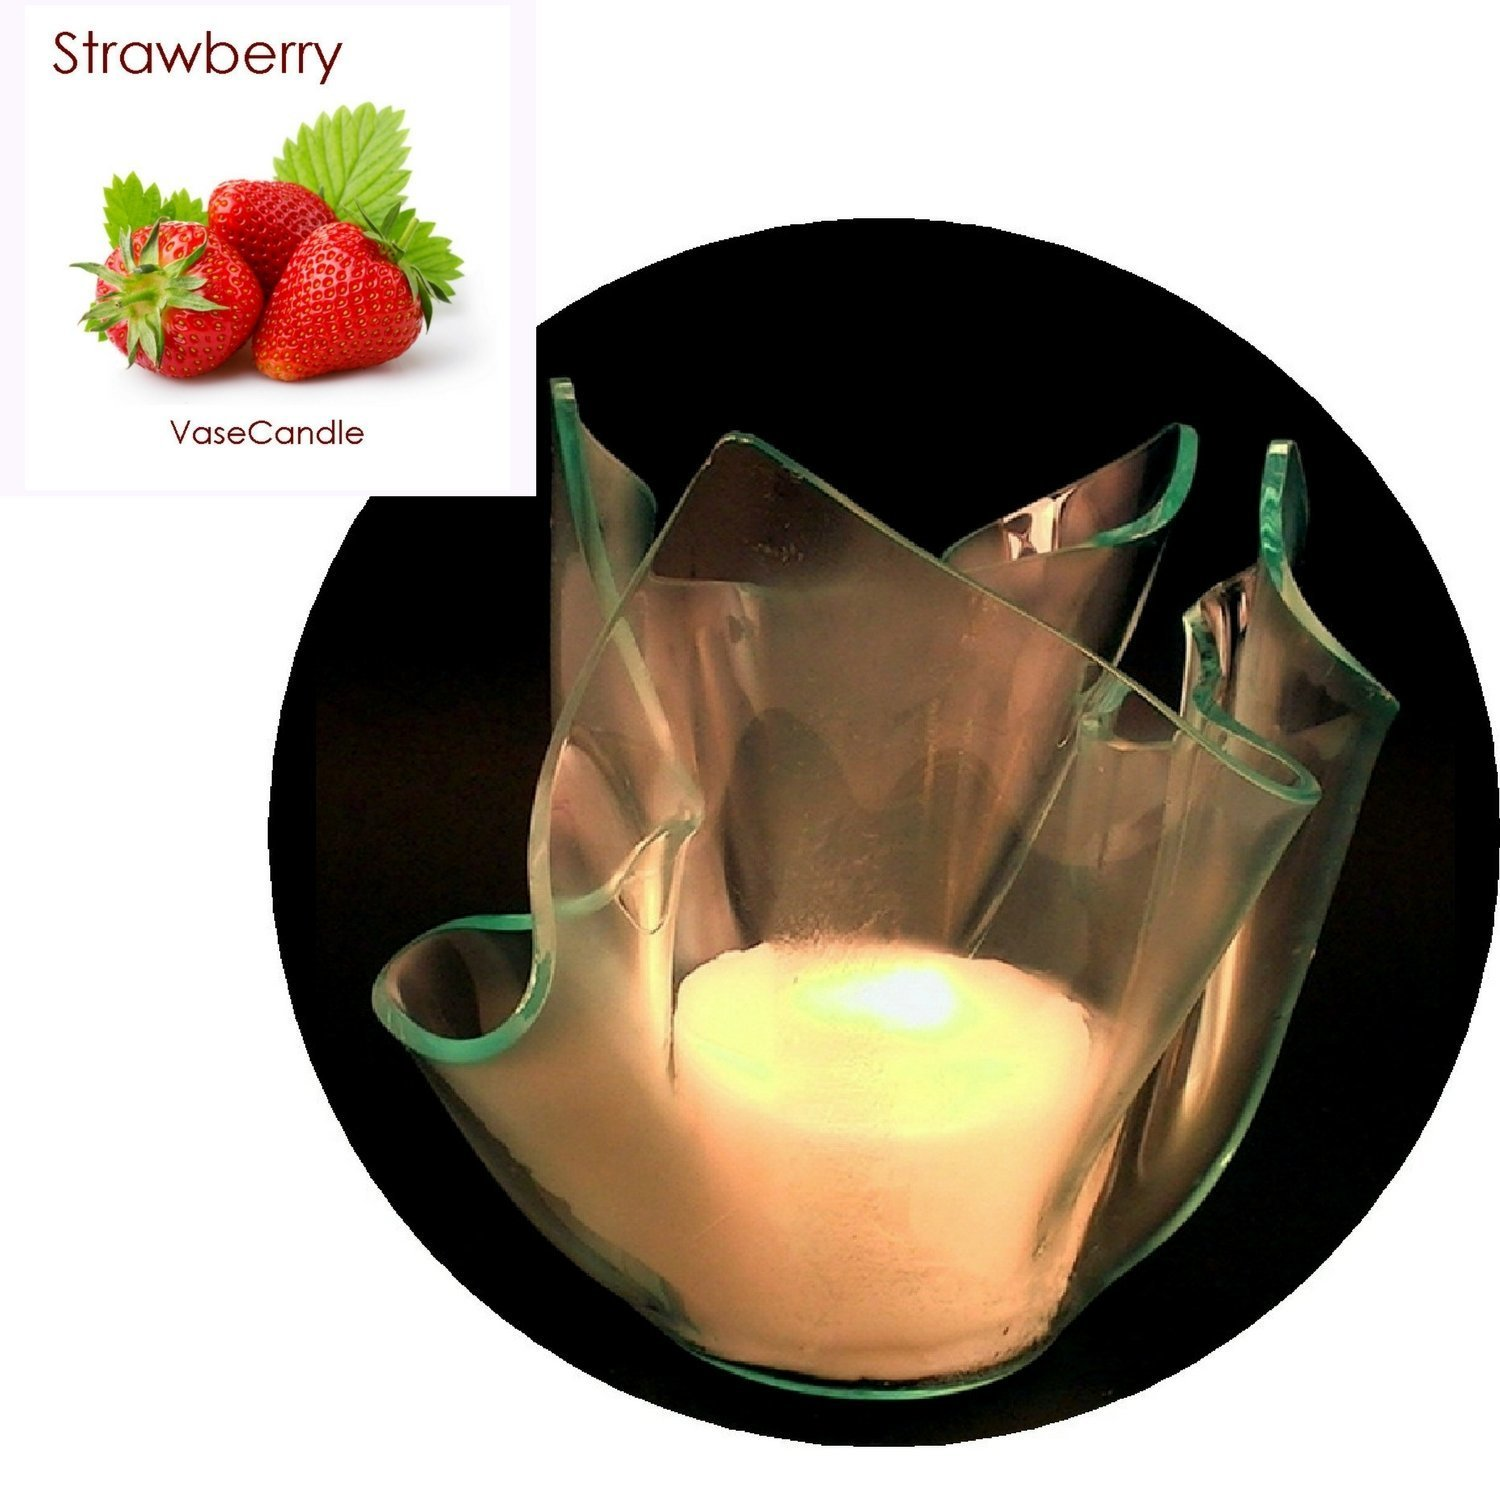 3 Strawberry Candle Refills | Clear Satin Vase